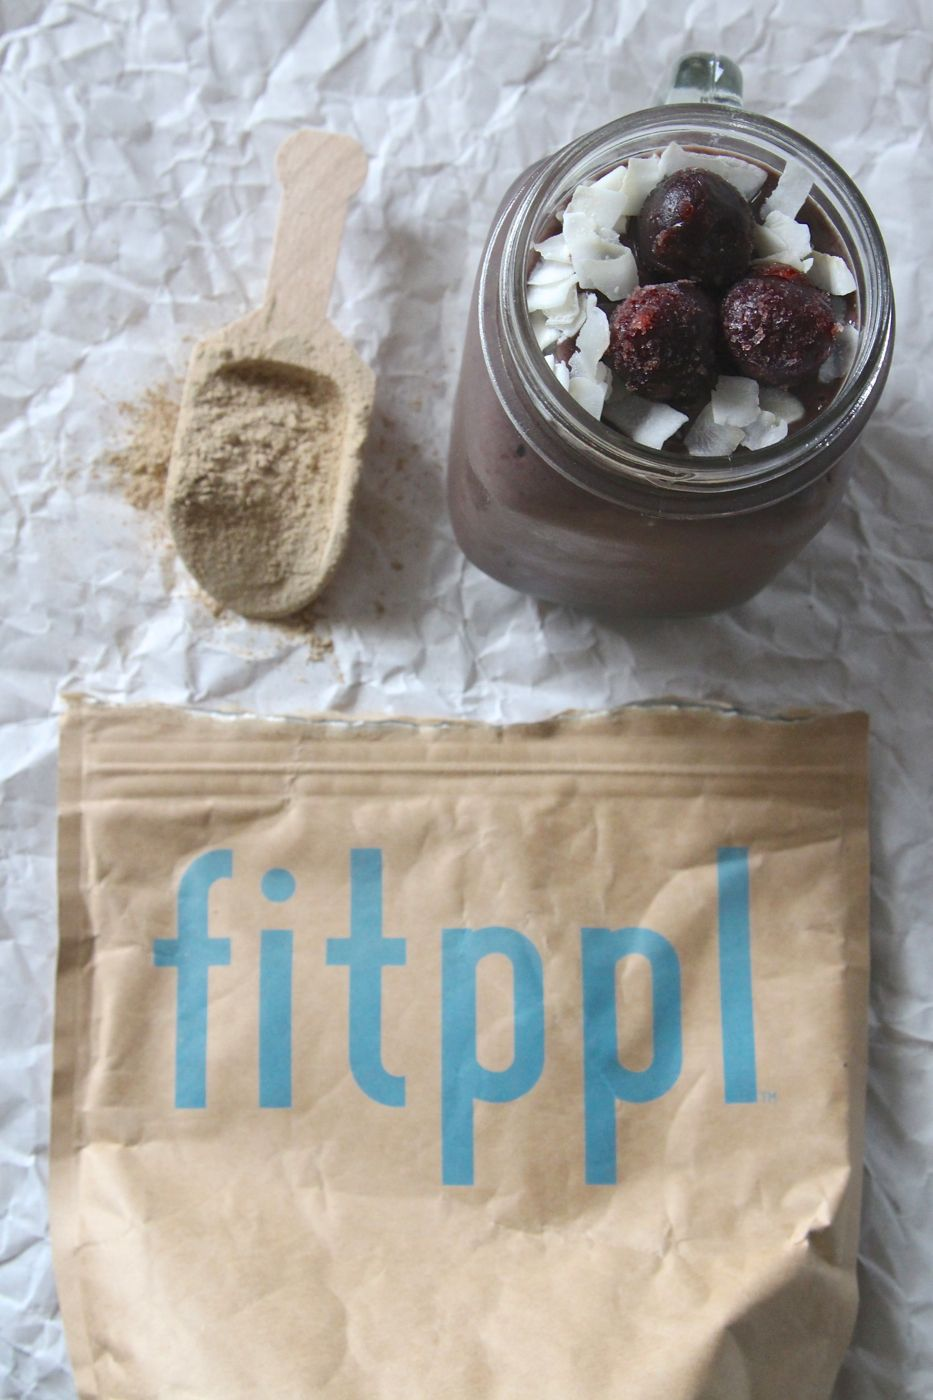 1 serving of cocoa blueberry fitppl protein 1 cup